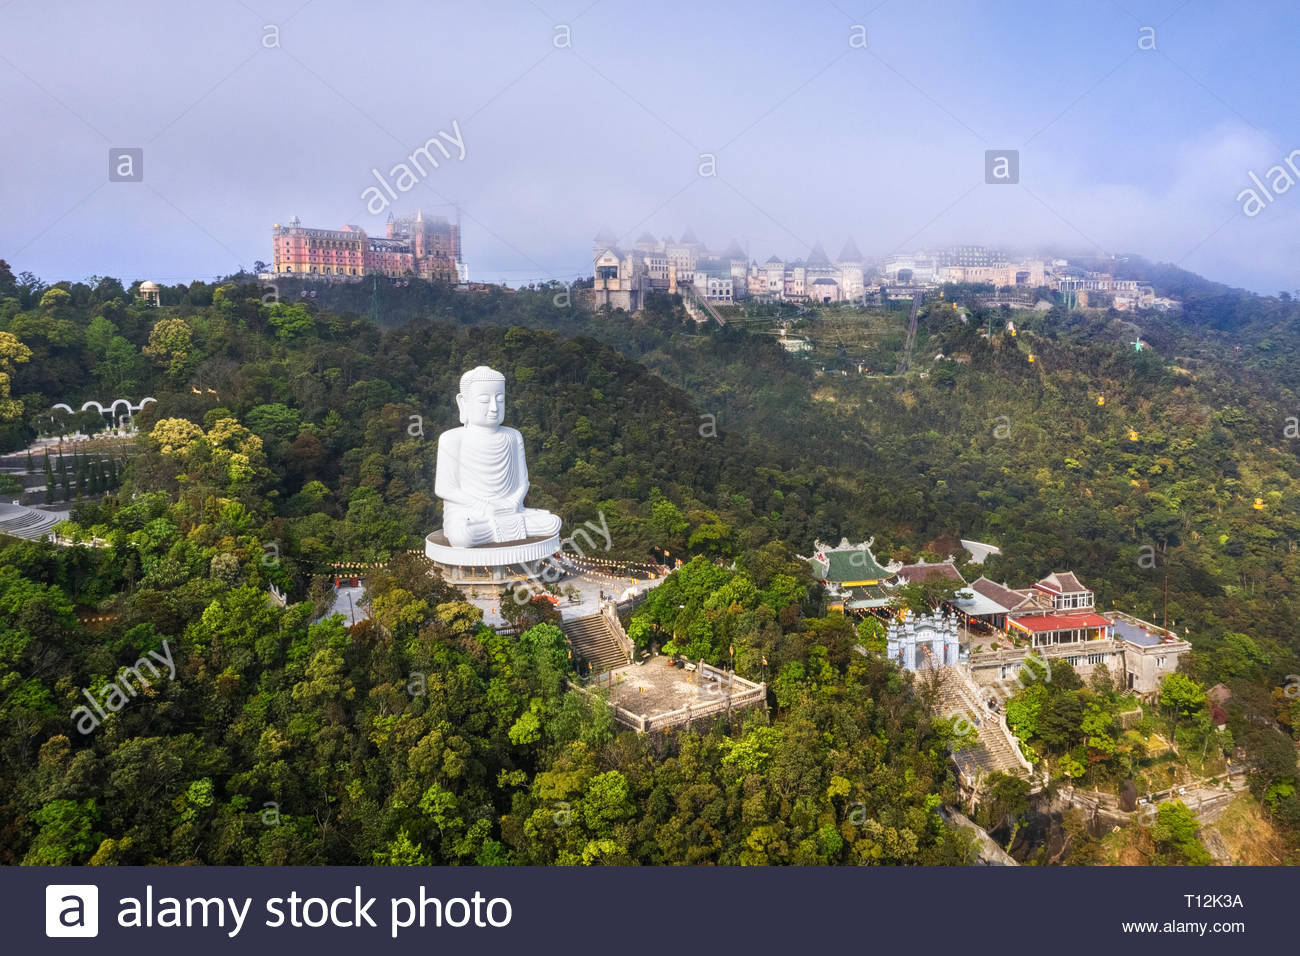 Aerial view of Linh Ung Pagoda with a giant buddha statue among green trees and sea clouds floating on the top of Ba Na mountain, Da Nang, Vietnam - Stock Image